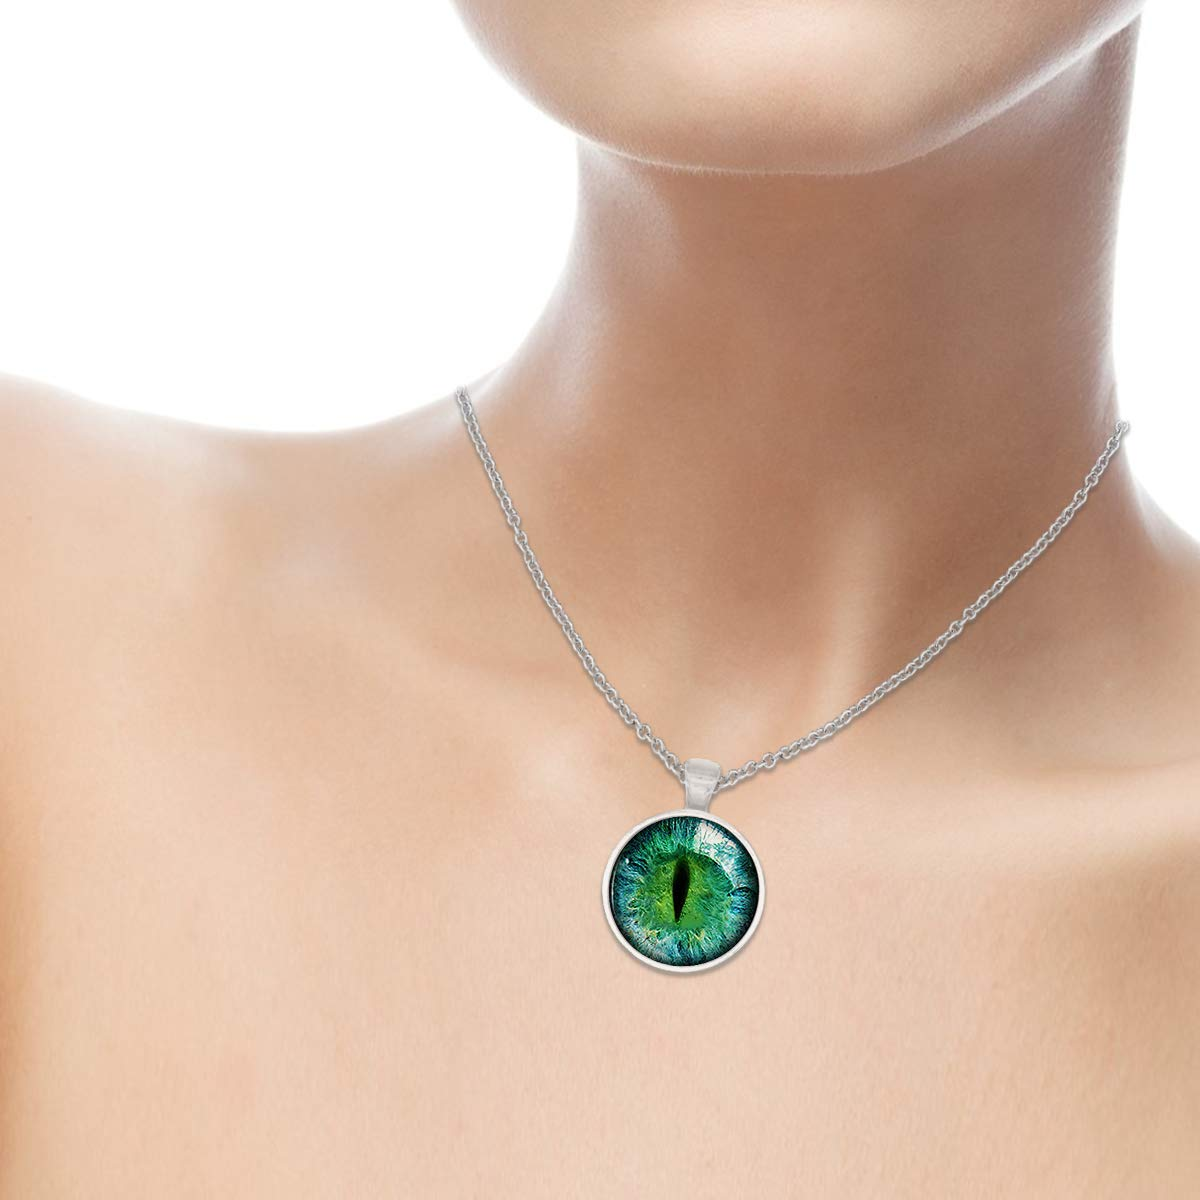 Family Decor Green Justice Dragon Eye Pendant Necklace Cabochon Glass Vintage Bronze Chain Necklace Jewelry Handmade